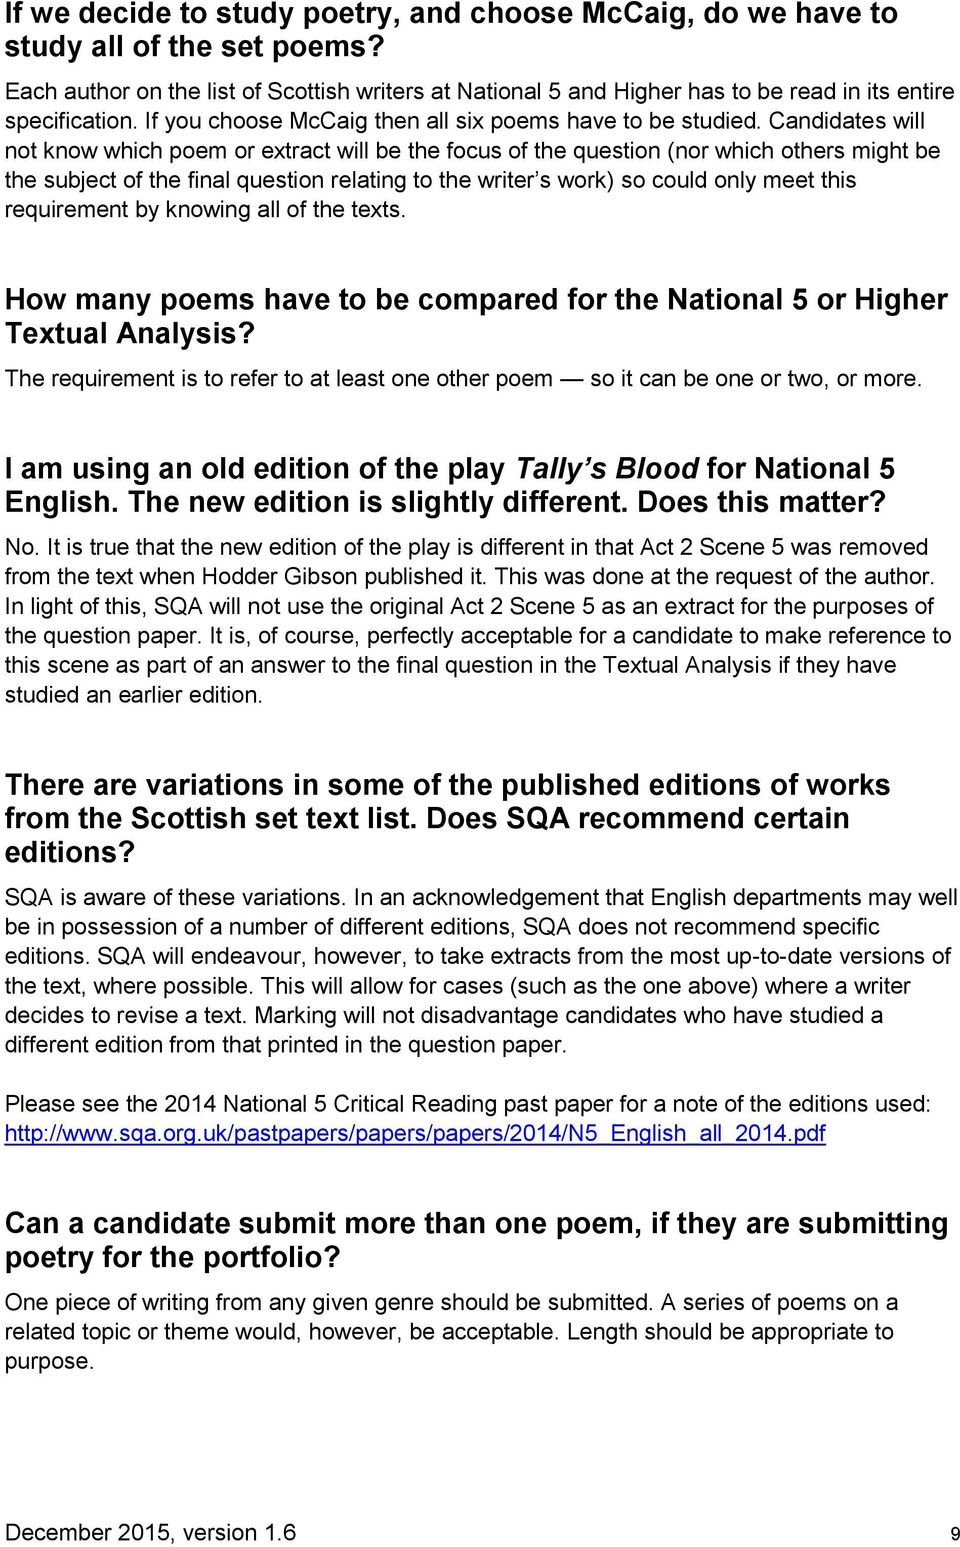 Candidates will not know which poem or extract will be the focus of the  question (